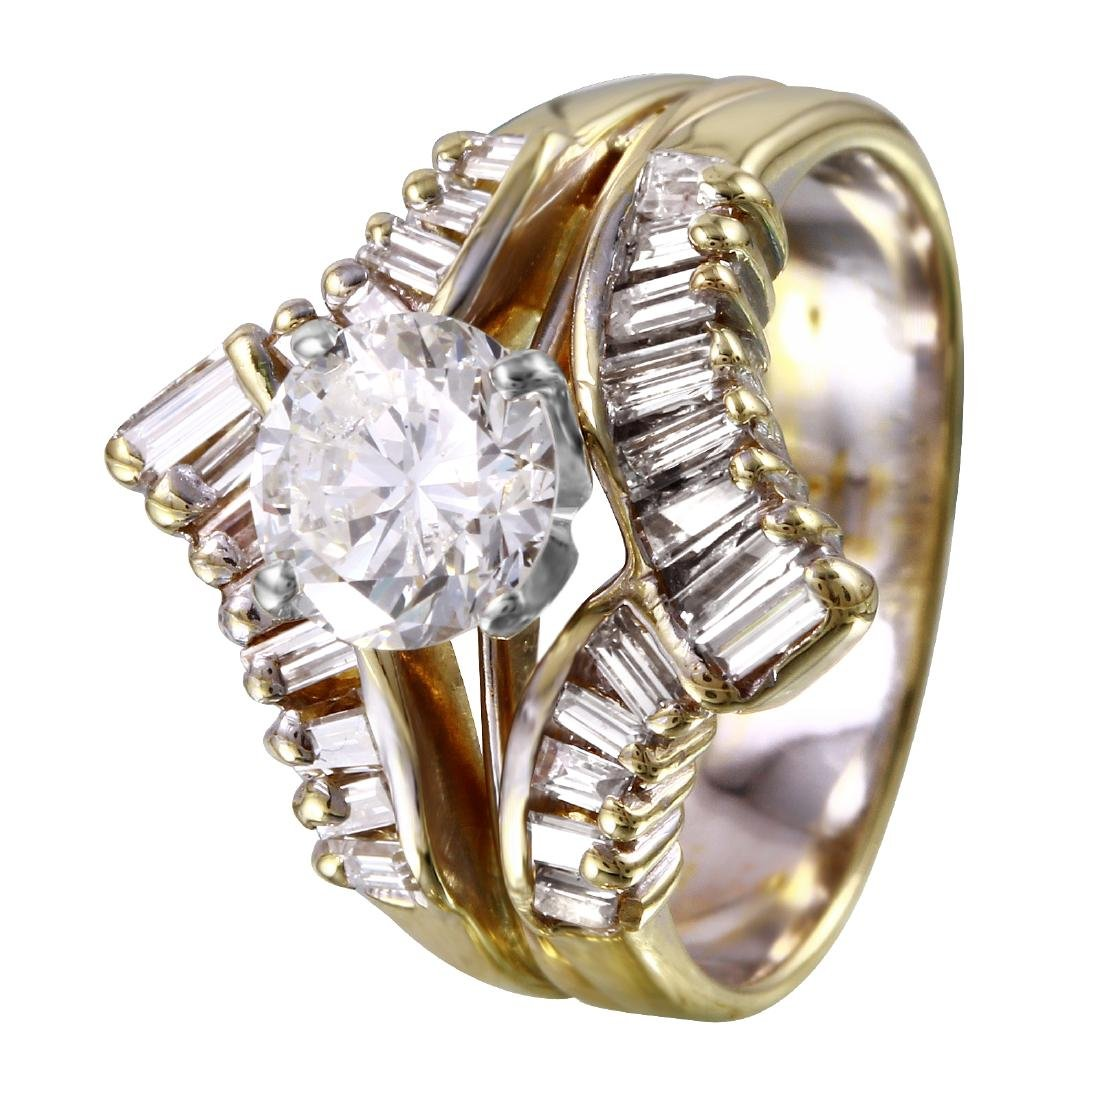 14KT Yellow Gold 1.51ctw Diamond Engagement Ring Size 5